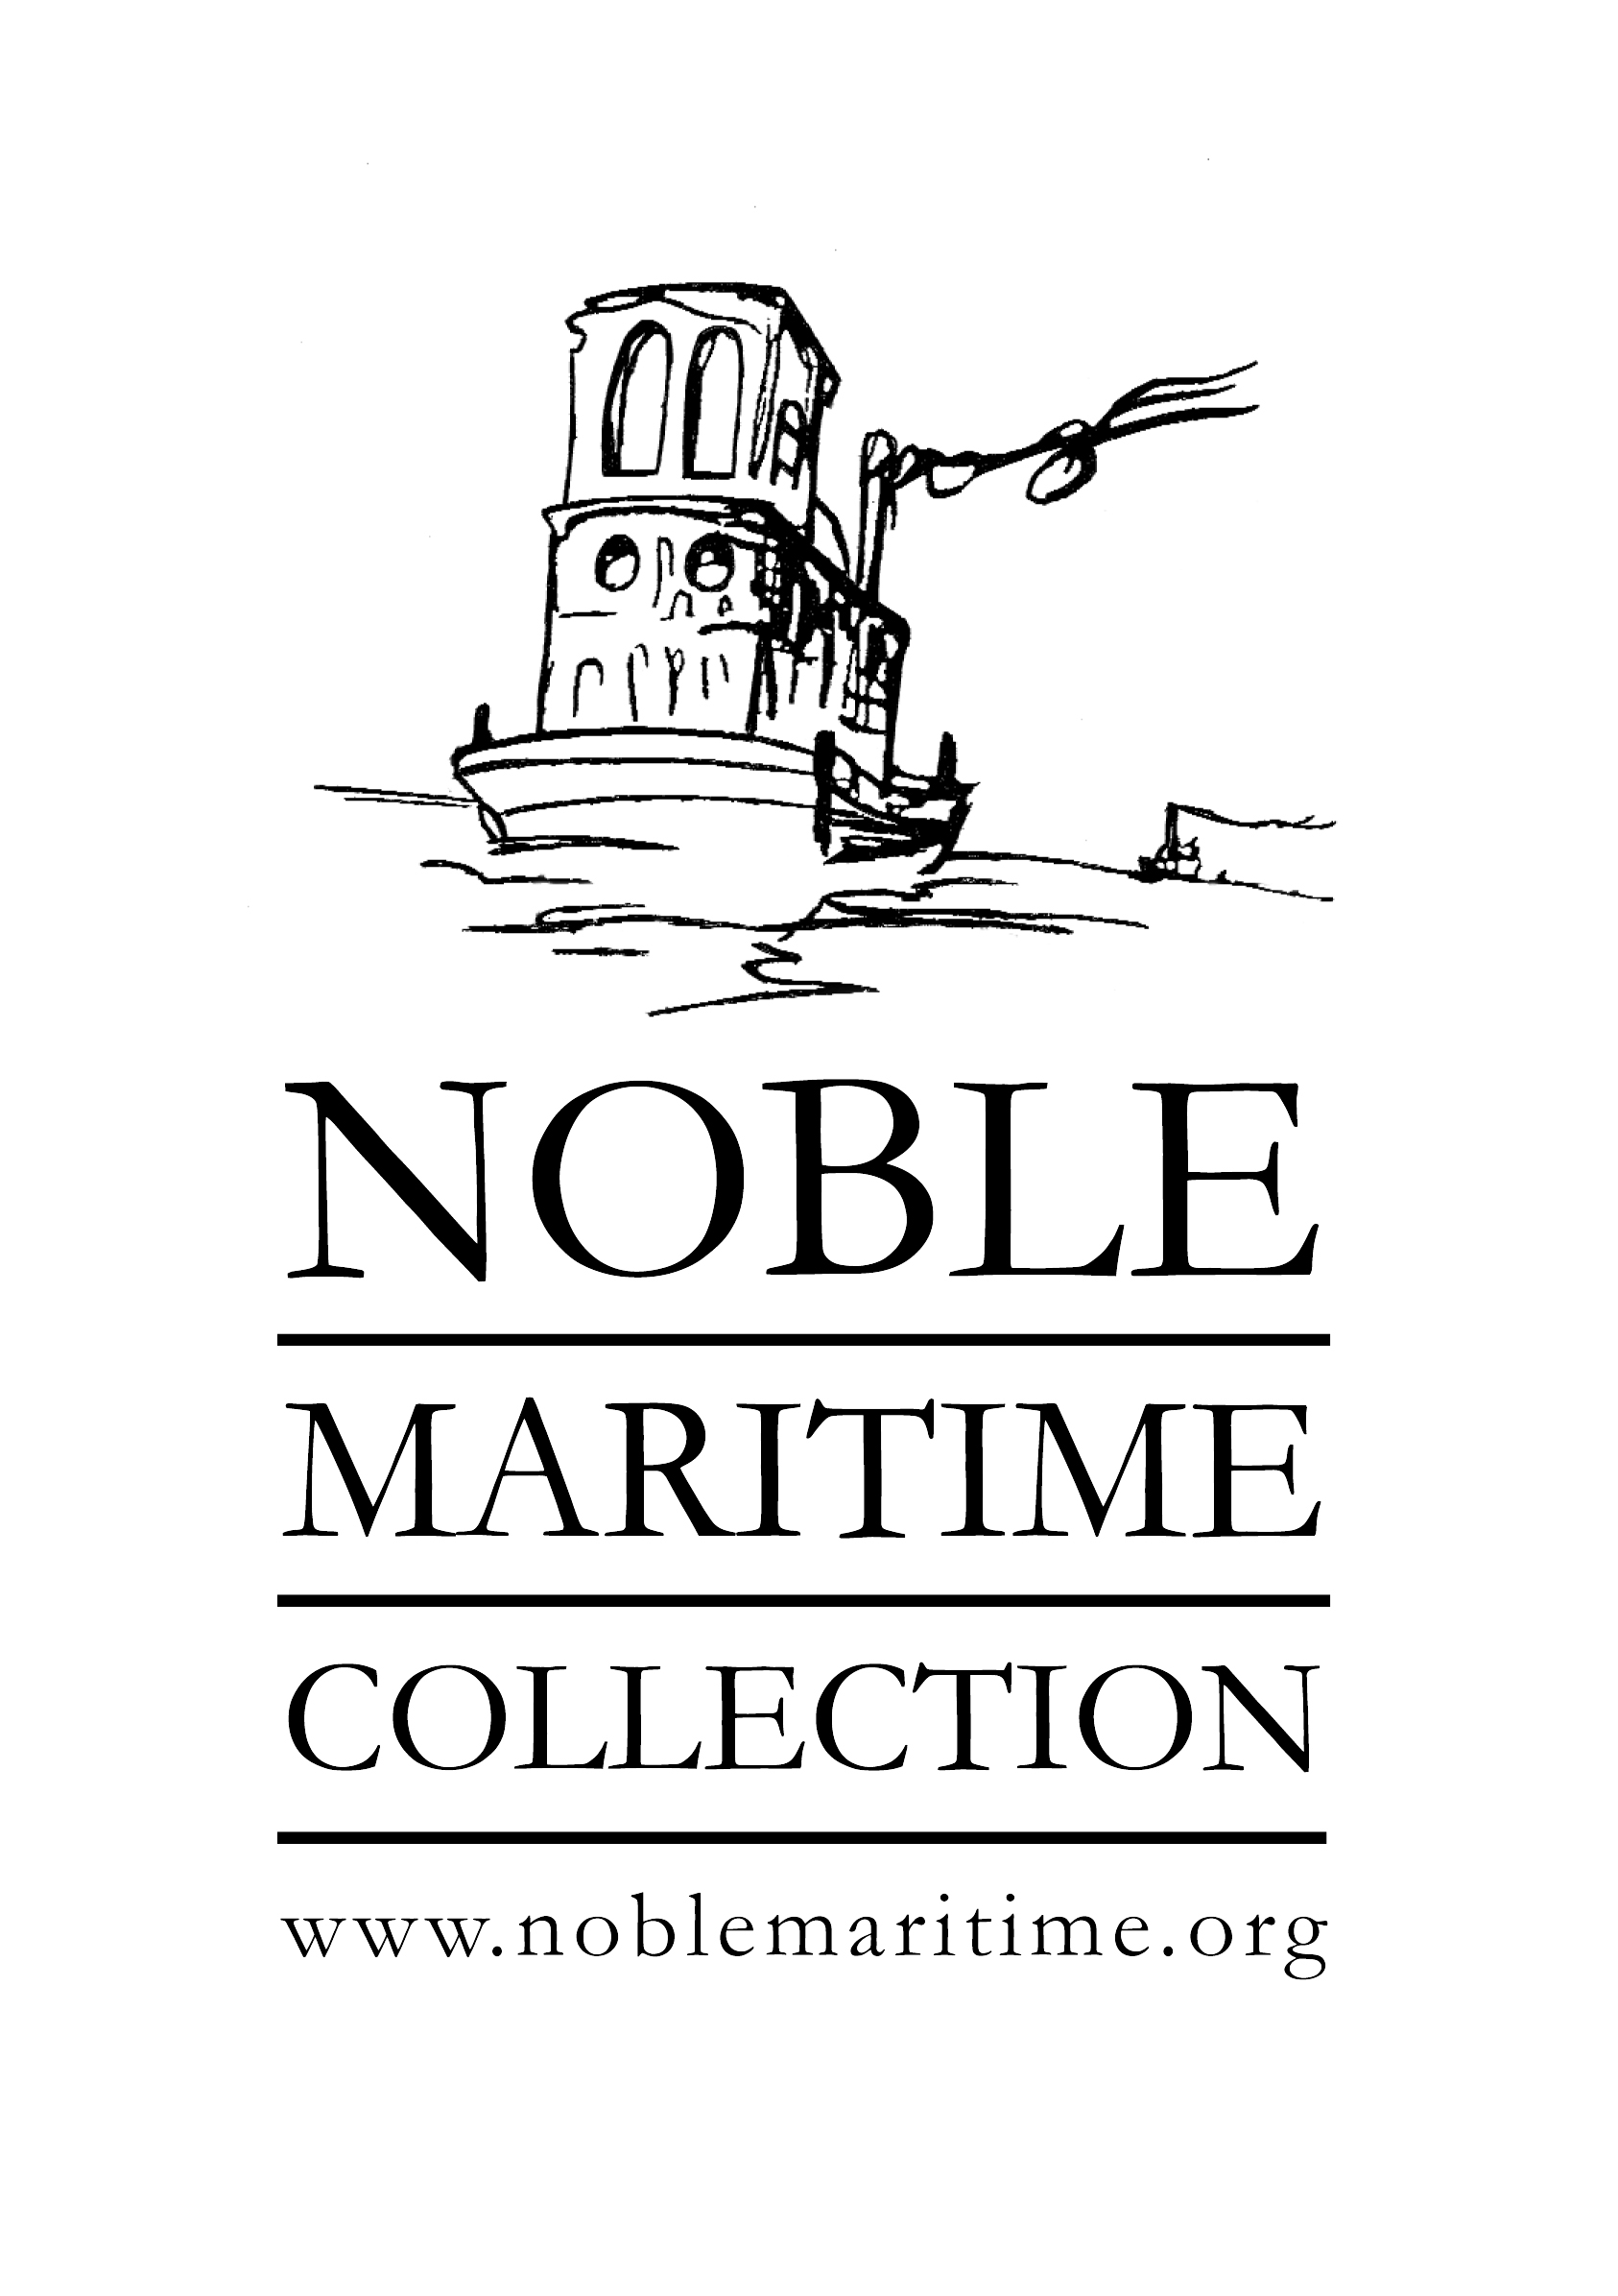 Noble Maritime Collection: The Oystermen of Captain's Row